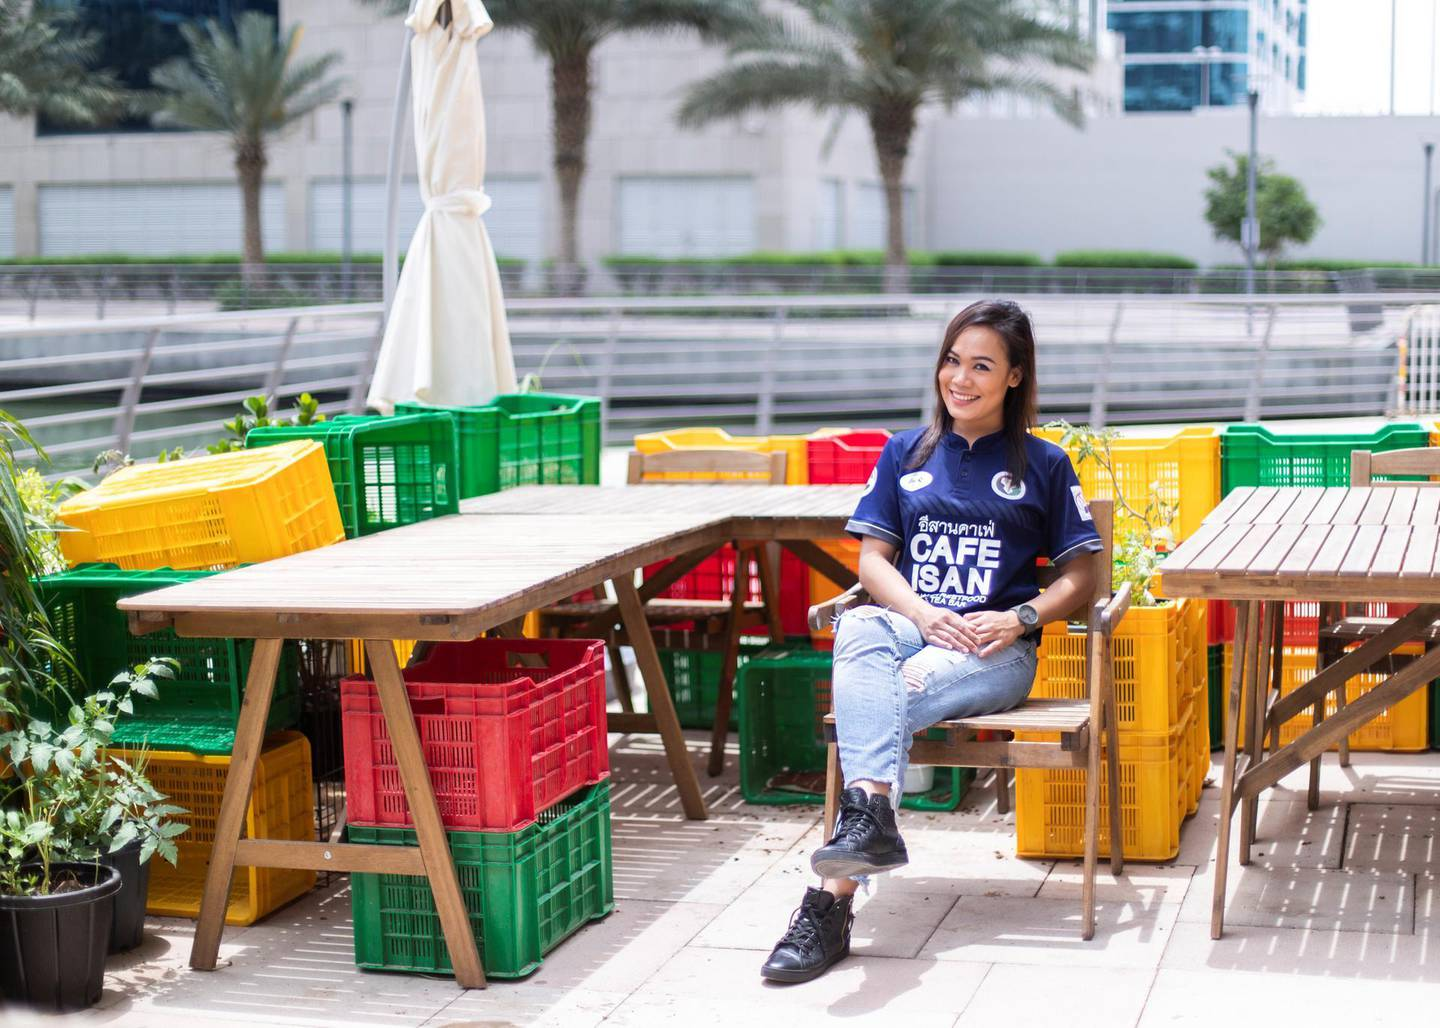 DUBAI, UNITED ARAB EMIRATES. 19 APRIL 2020. Chef New Chaklang of Cafe Isan in JLT.(Photo: Reem Mohammed/The National)Reporter:Section: